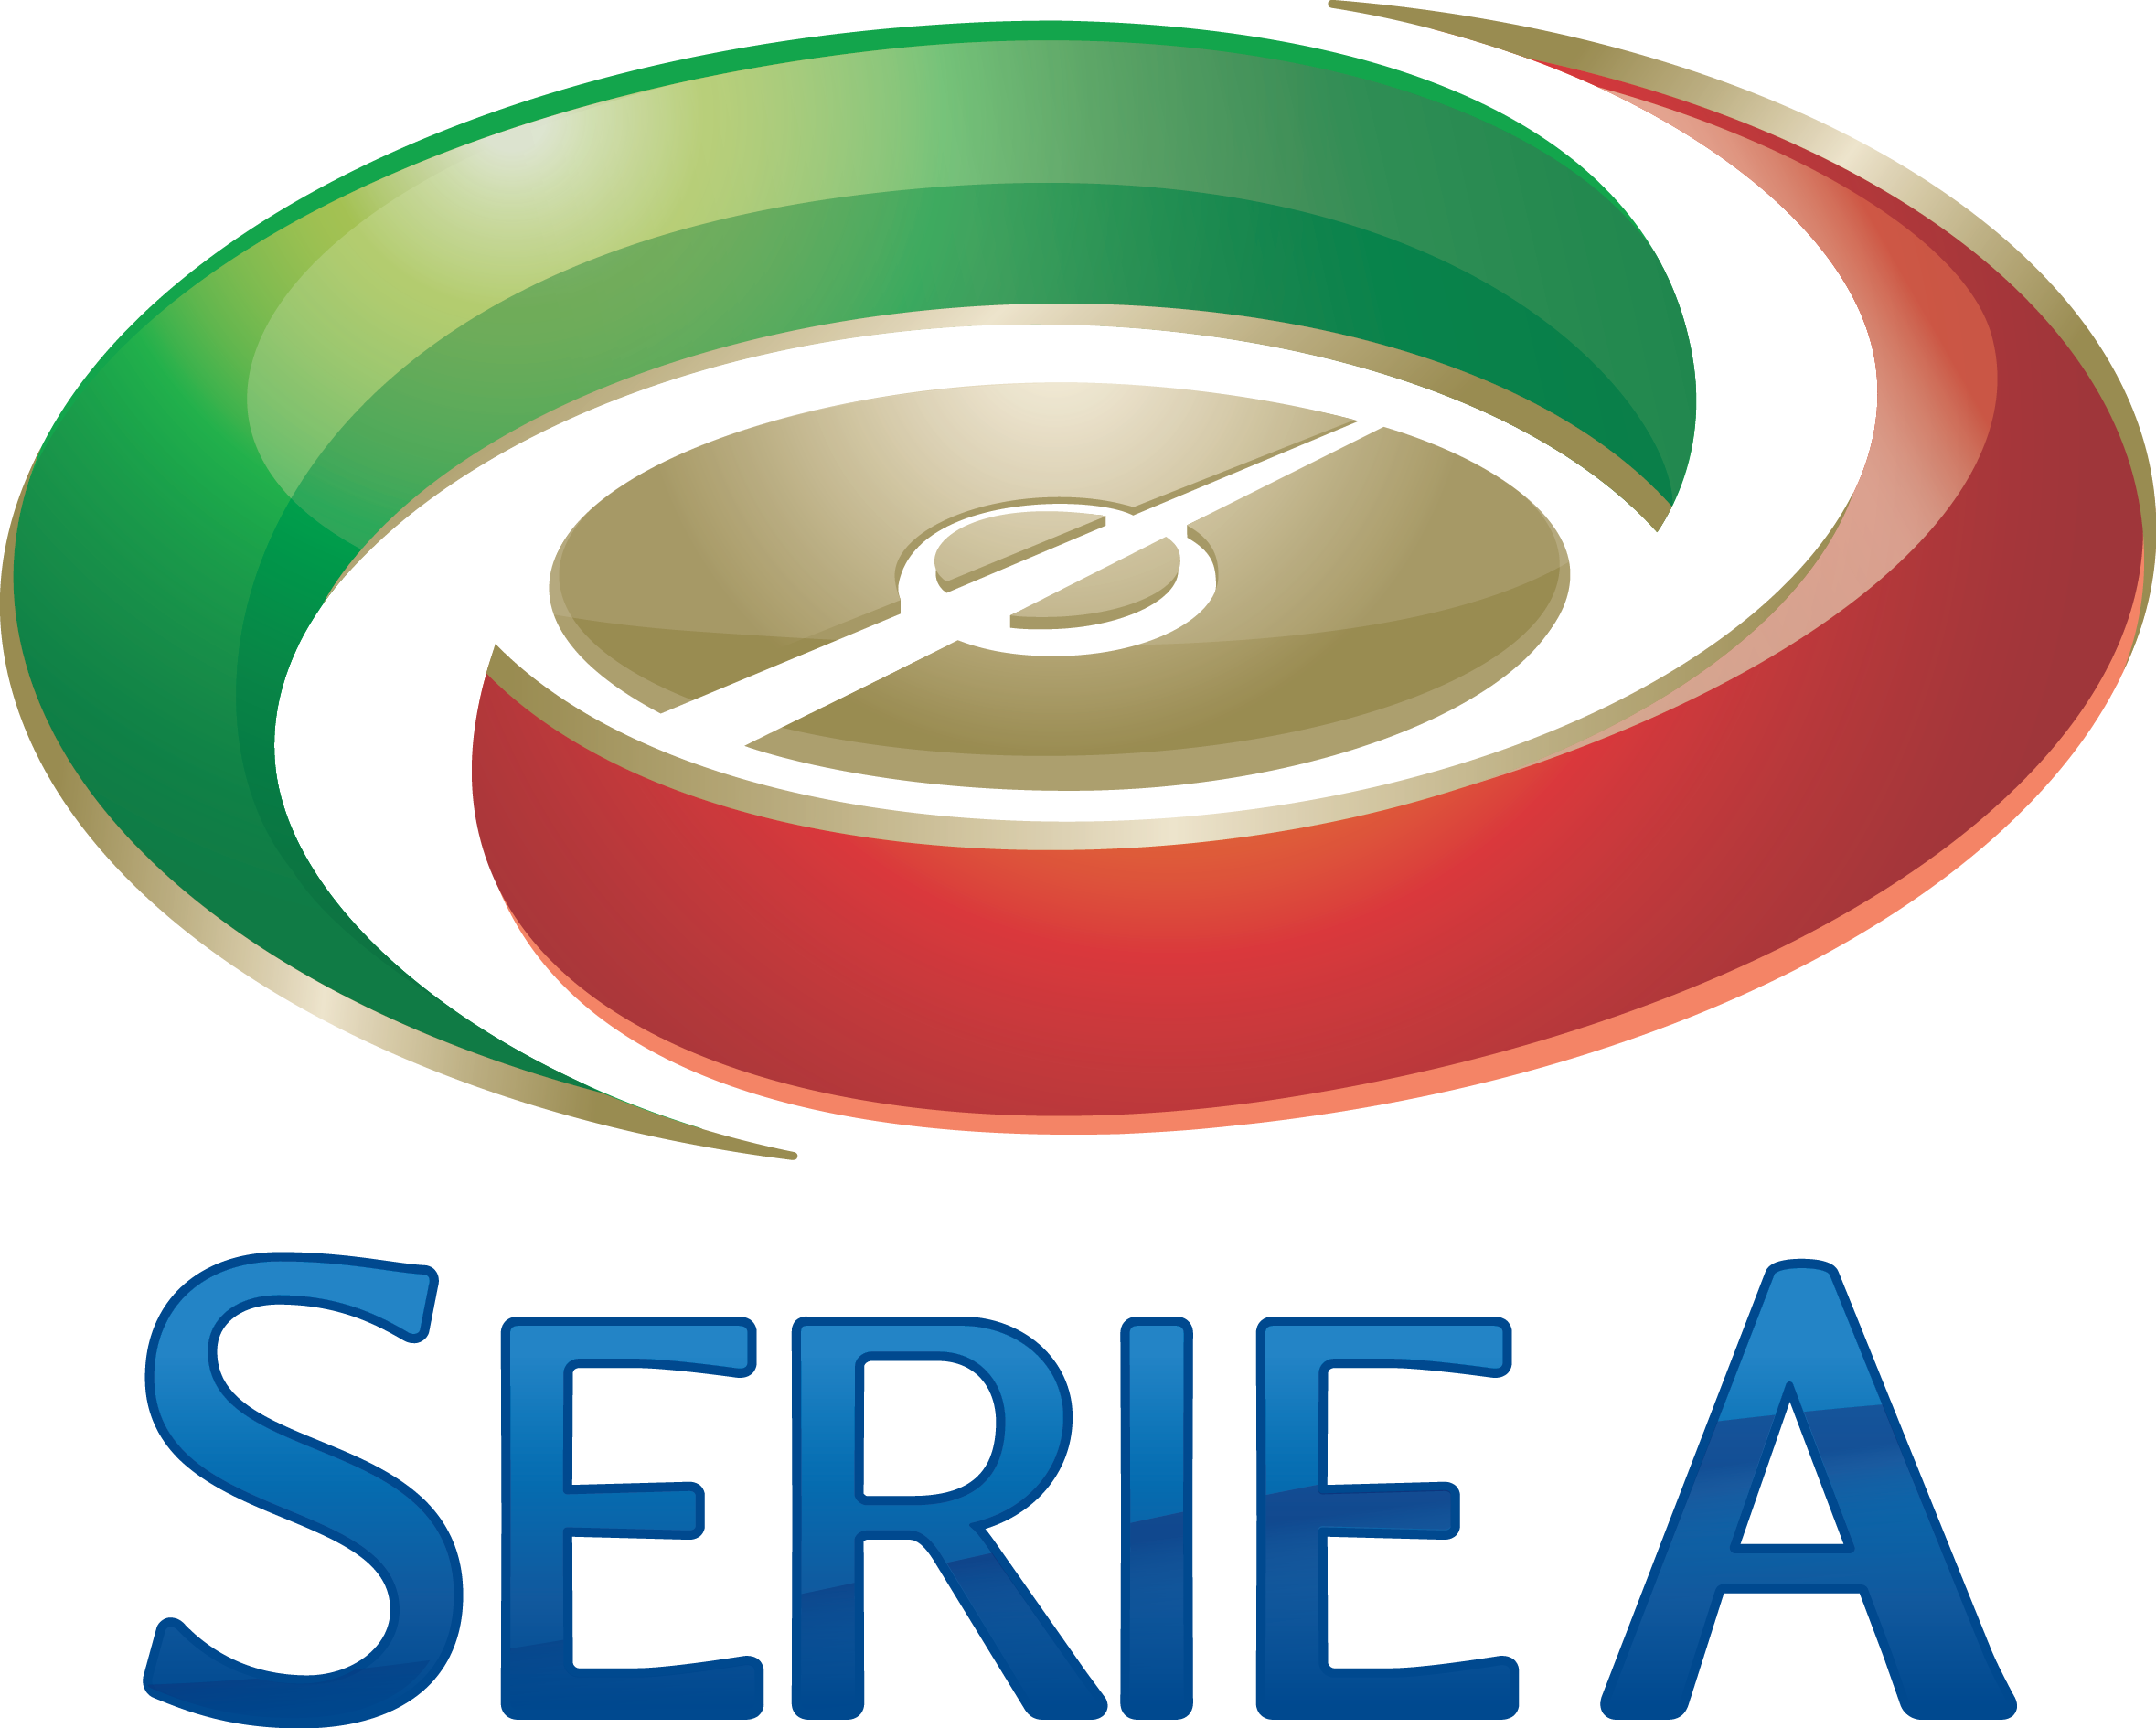 Roma vs Atalanta 1-1 All goals and highlights 19/04/2015